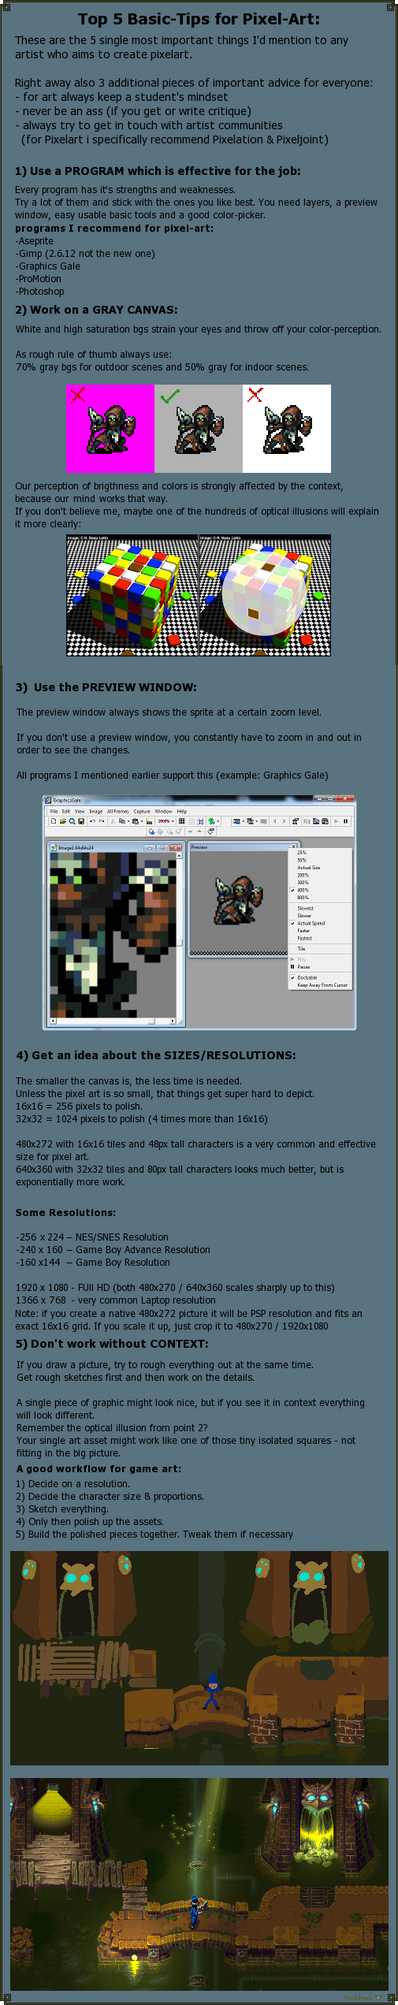 Top 5 Basic Tips for Pixel Art by Cyangmou